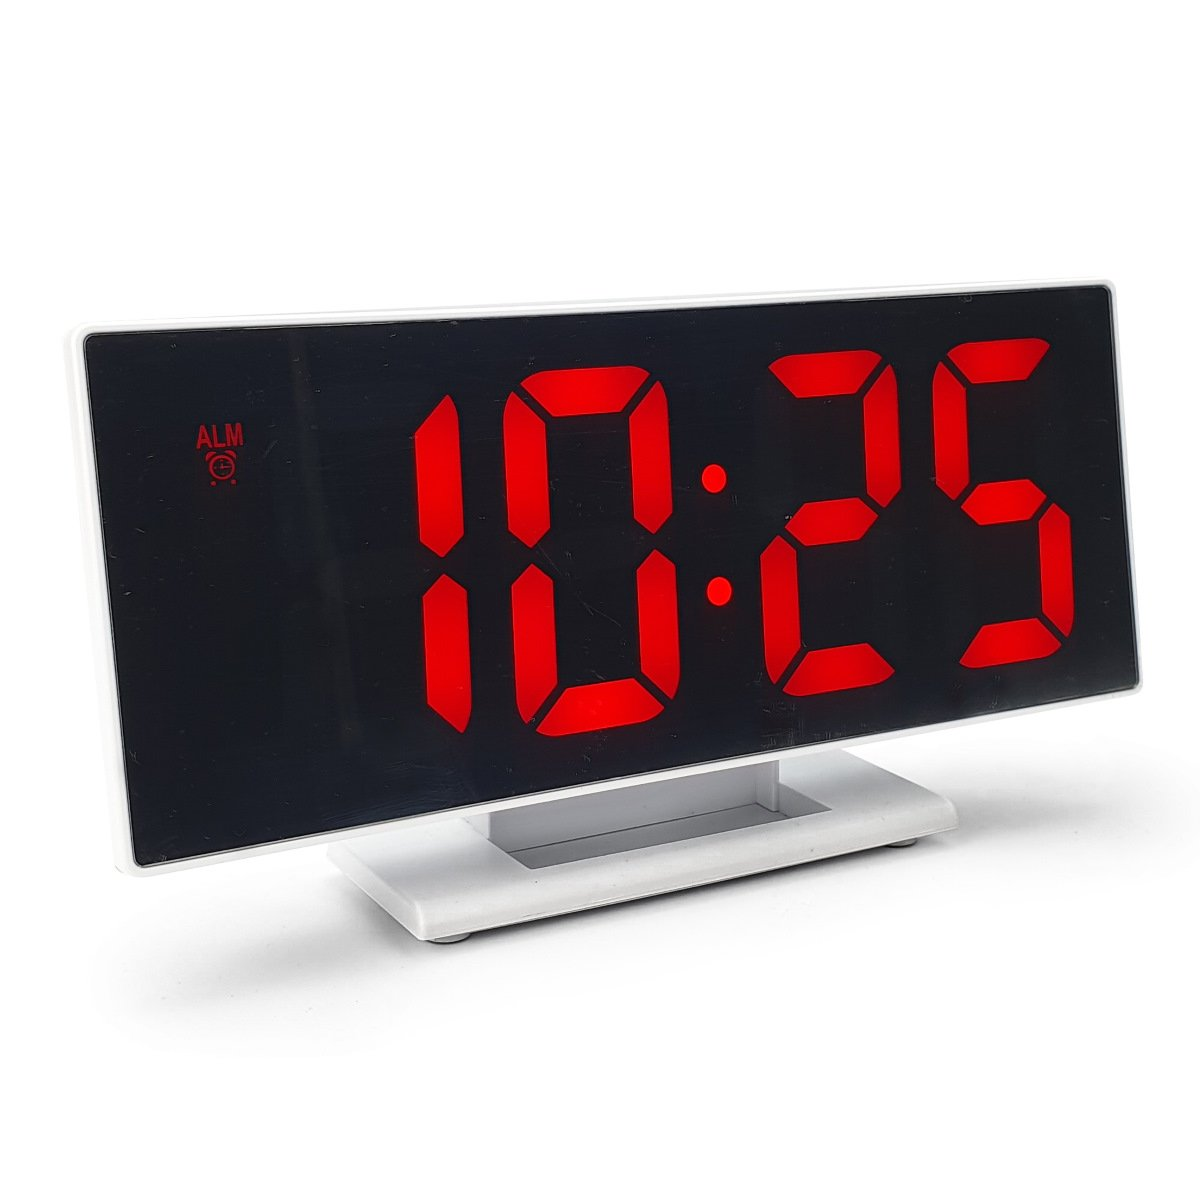 Checkmate Hunter Mirrored Face LCD Alarm Clock Red 19cm VGW 3618 RED 1